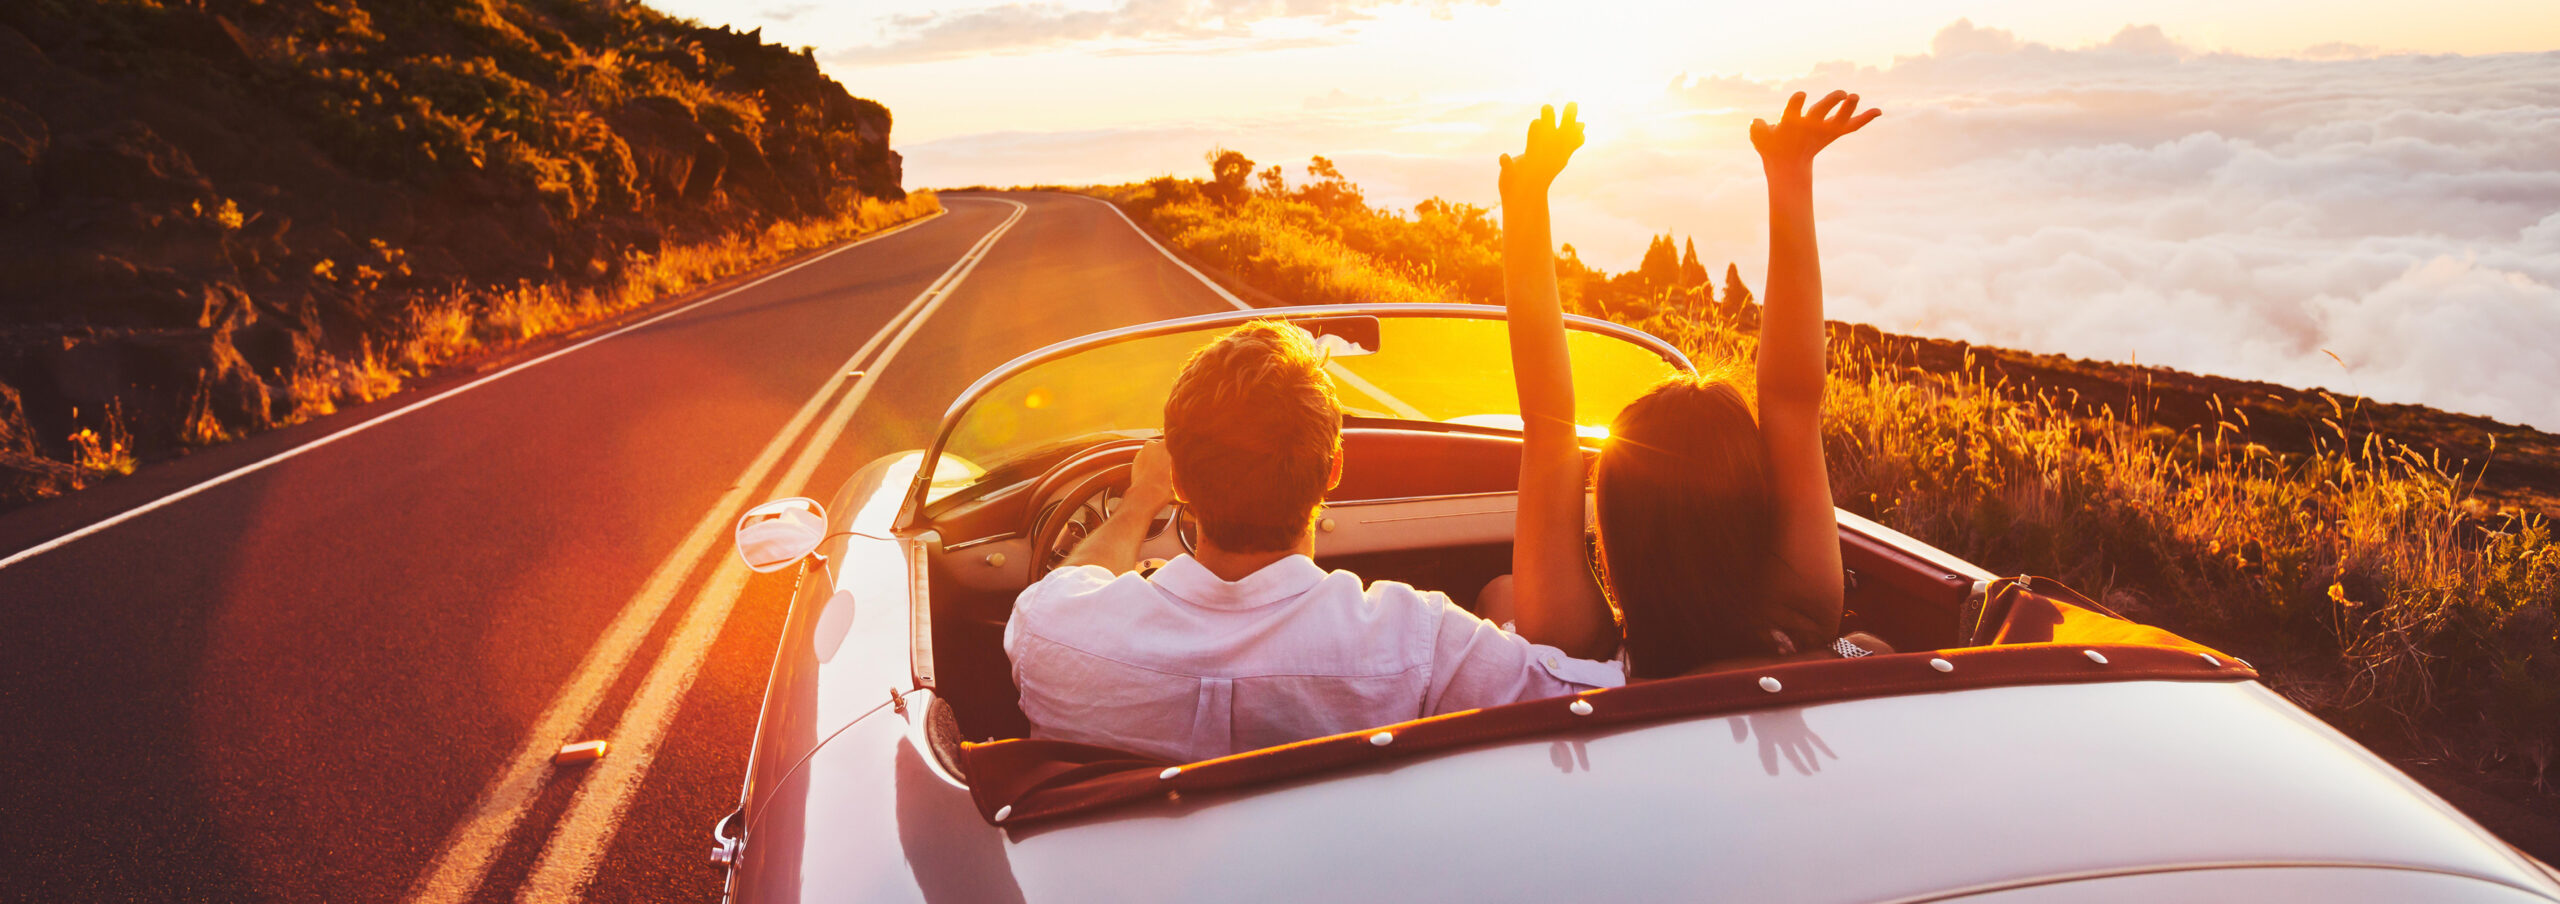 Man and women in convertible on open road